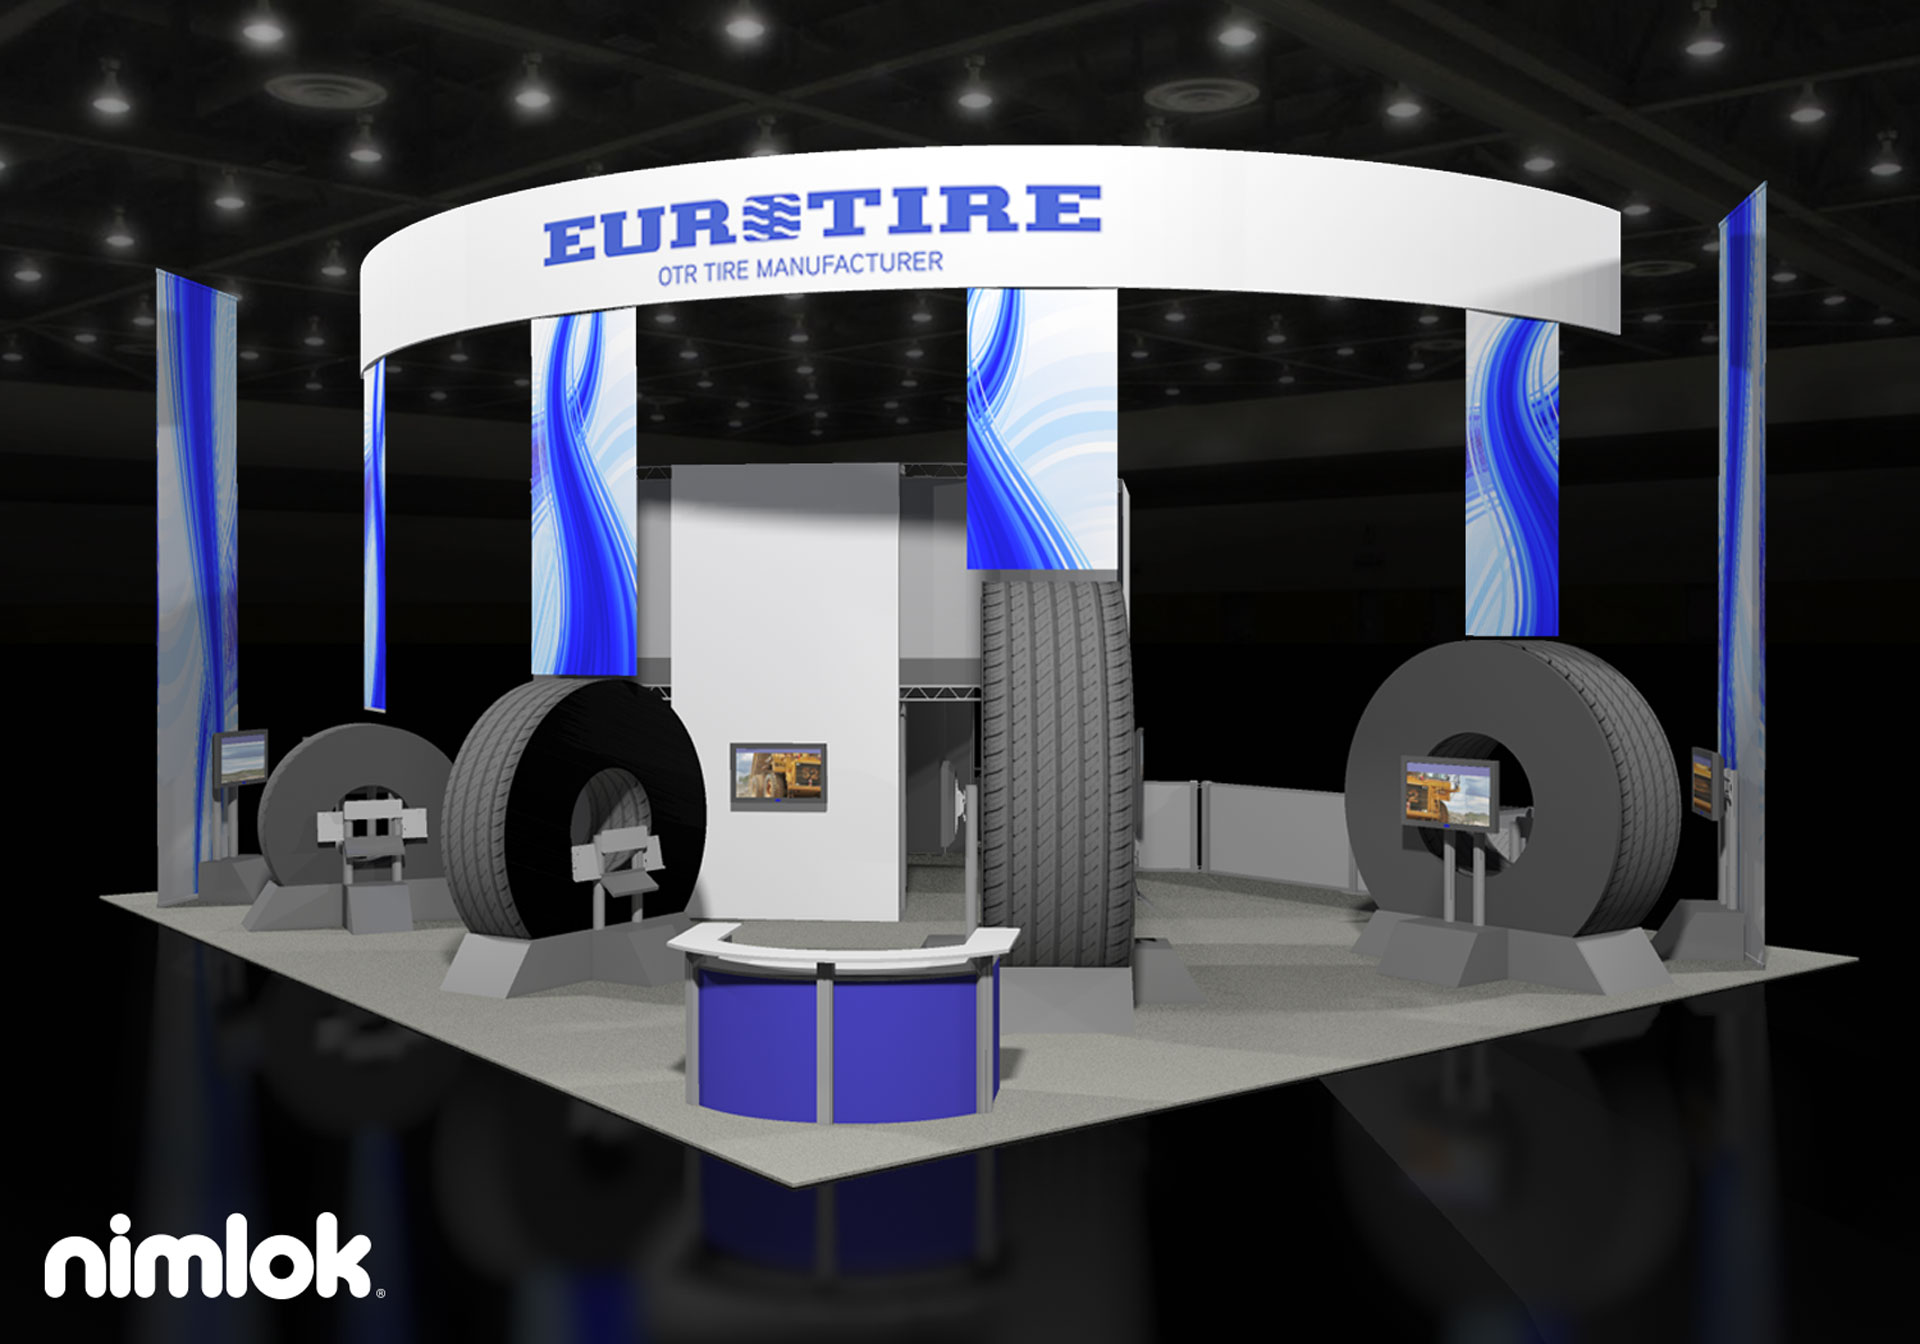 Euro Tire - Best Tire - 50x50 - trade show exhibit